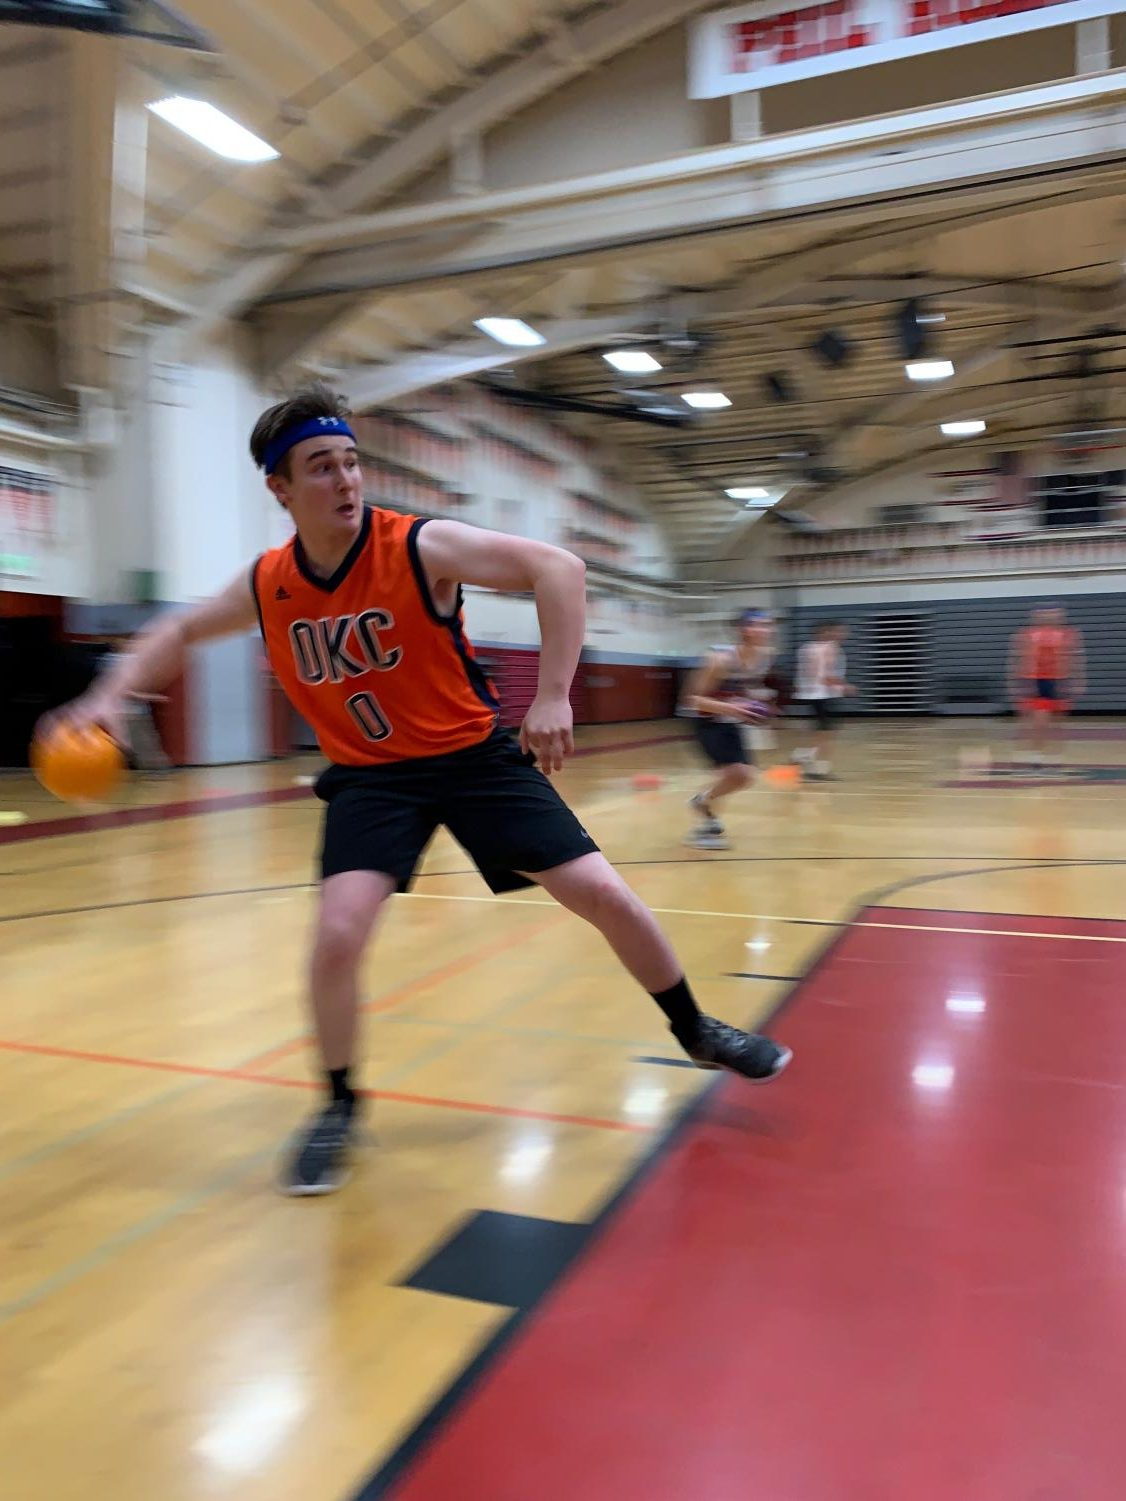 Students competed in the Redwood gym on Friday night as a part of Redwood Night Live's annual dodgeball tournament.